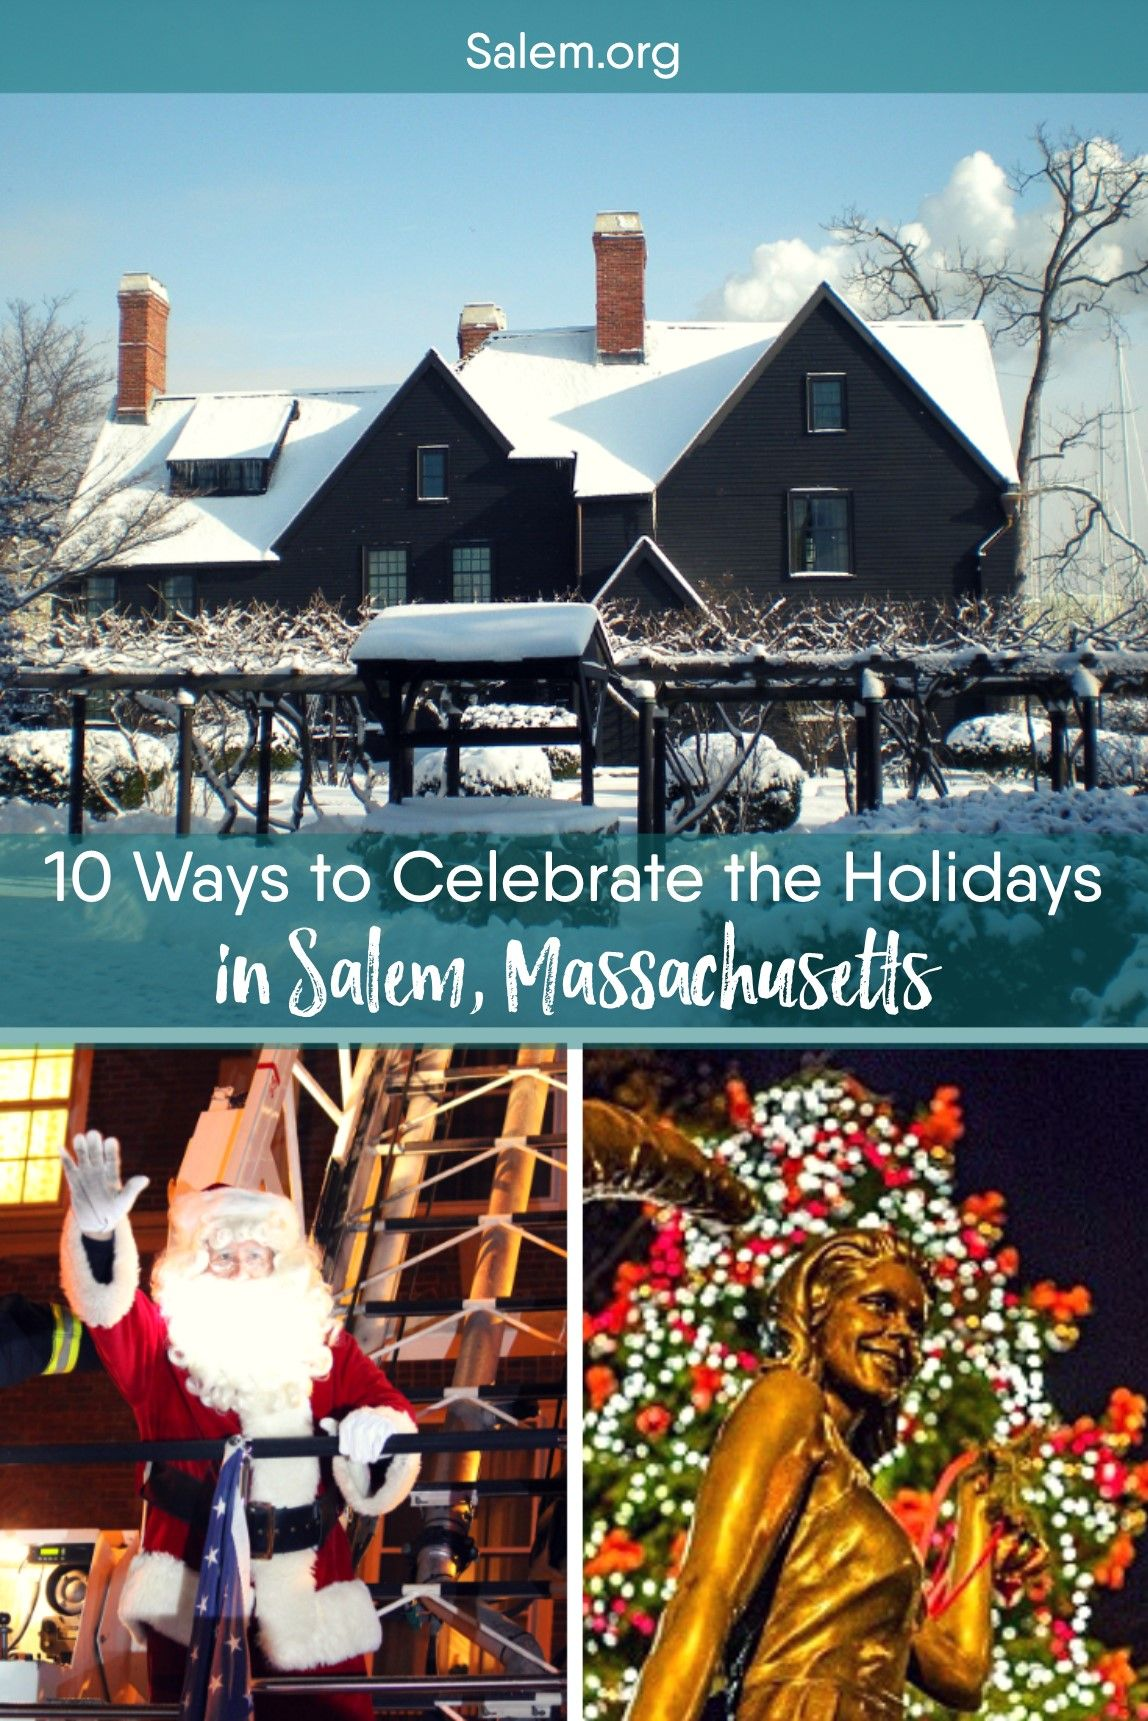 10 Ways to Celebrate the Holidays in Salem Holiday